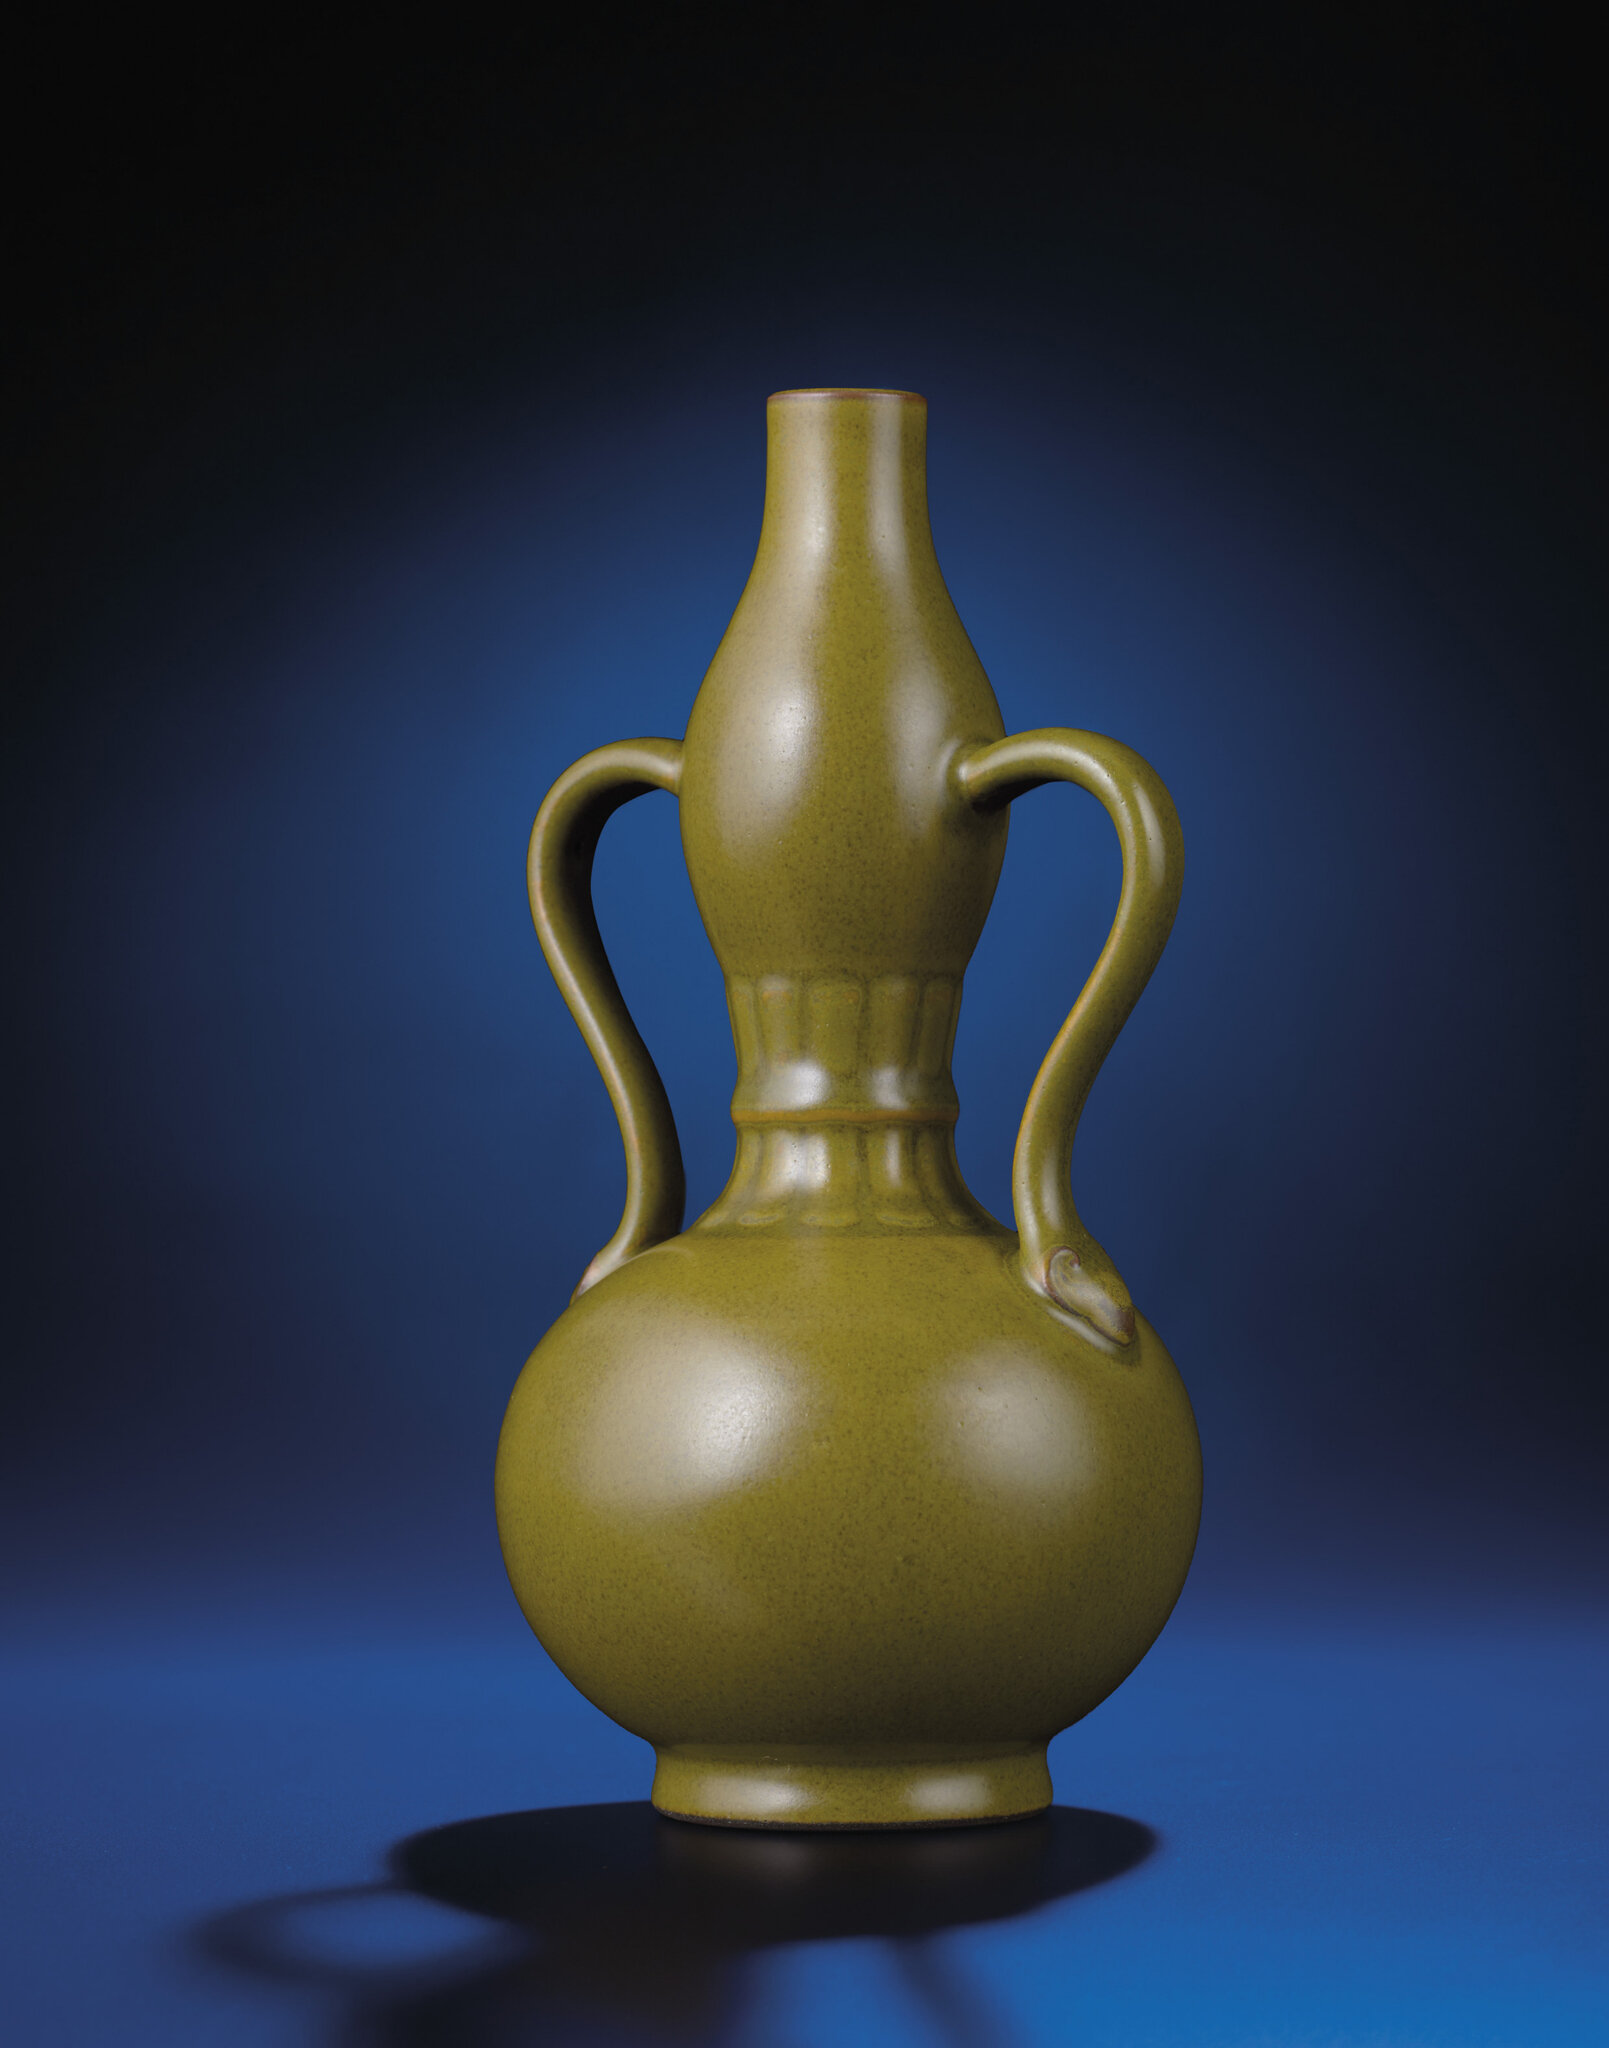 A fine teadust-glazed double-gourd vase, Qianlong impressed six-character seal mark and of the period (1736-1795)